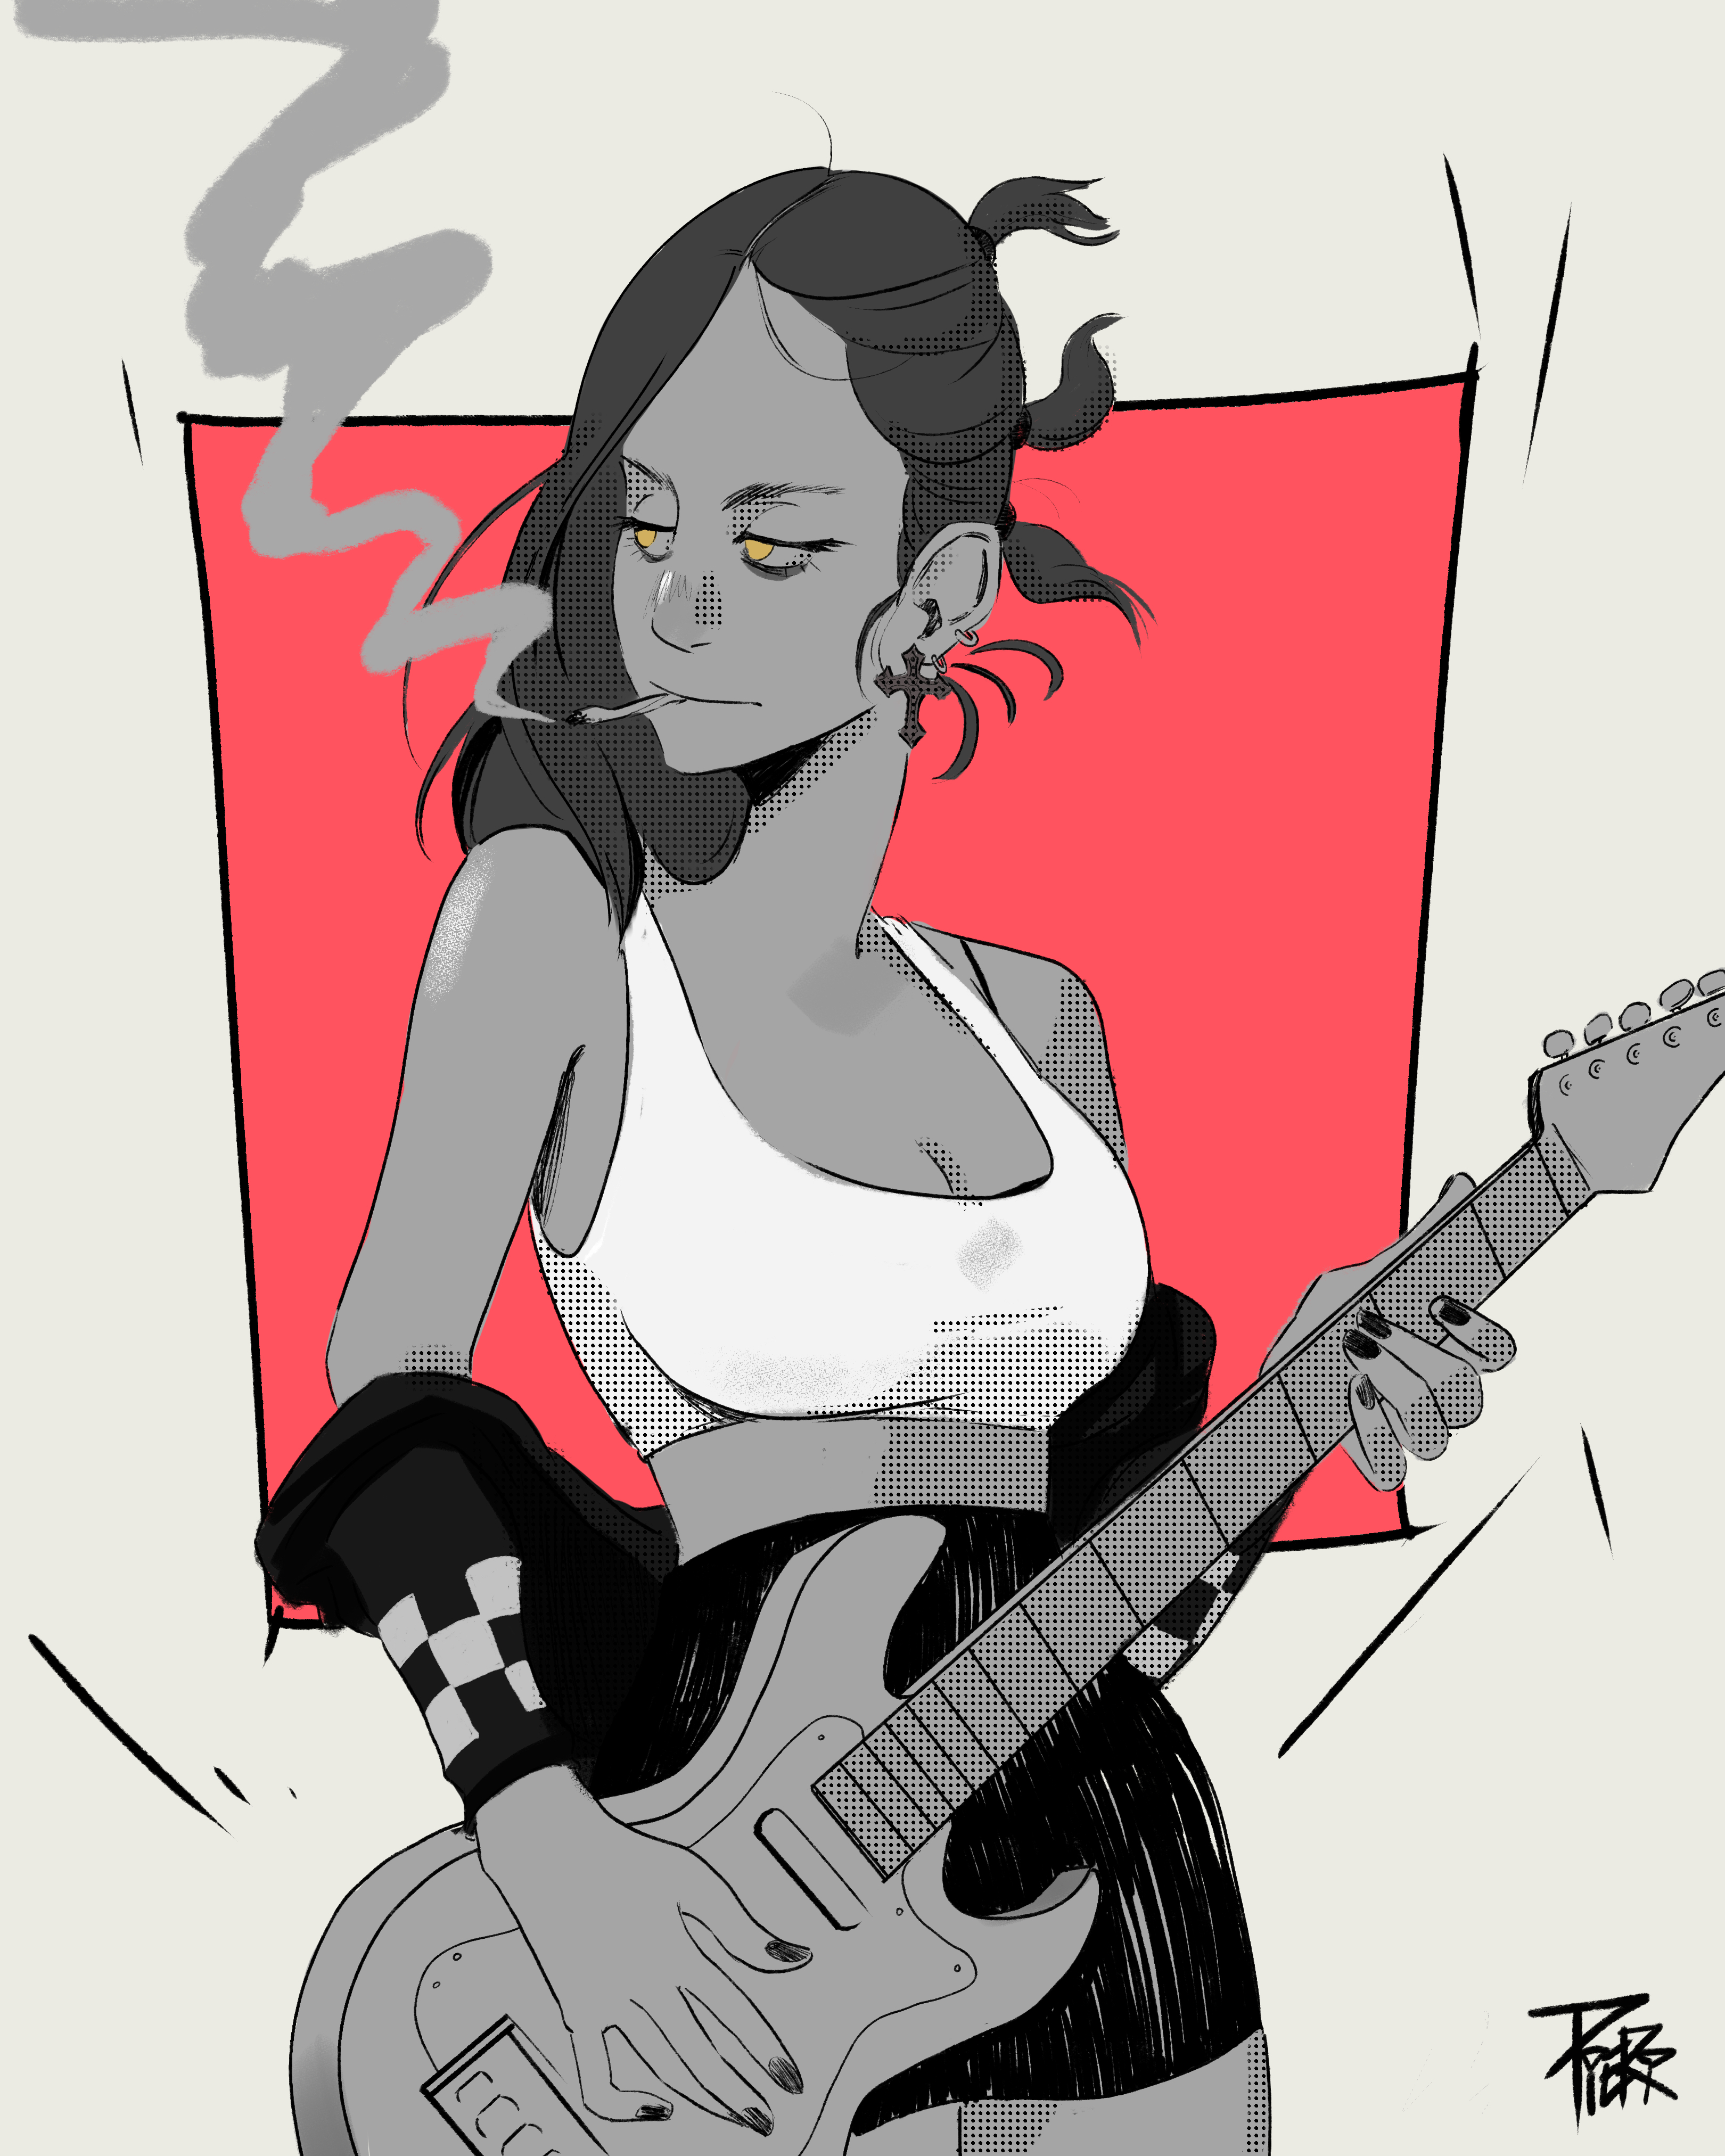 The girl of the band